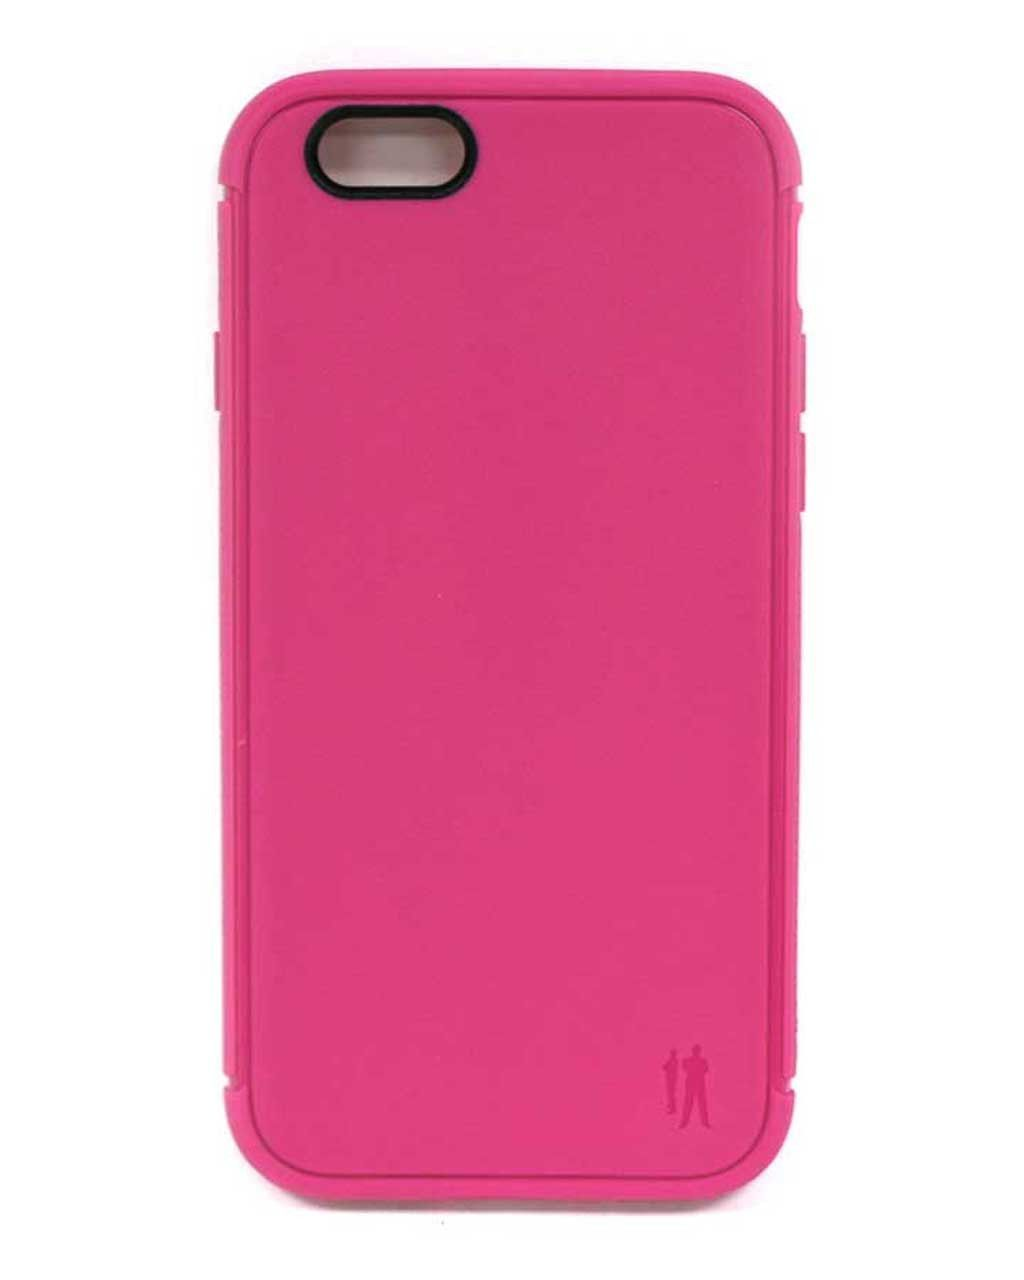 BodyGuardz Shock Unequal Case for Apple iPhone   Products   Pinterest 9a4e17dbe32